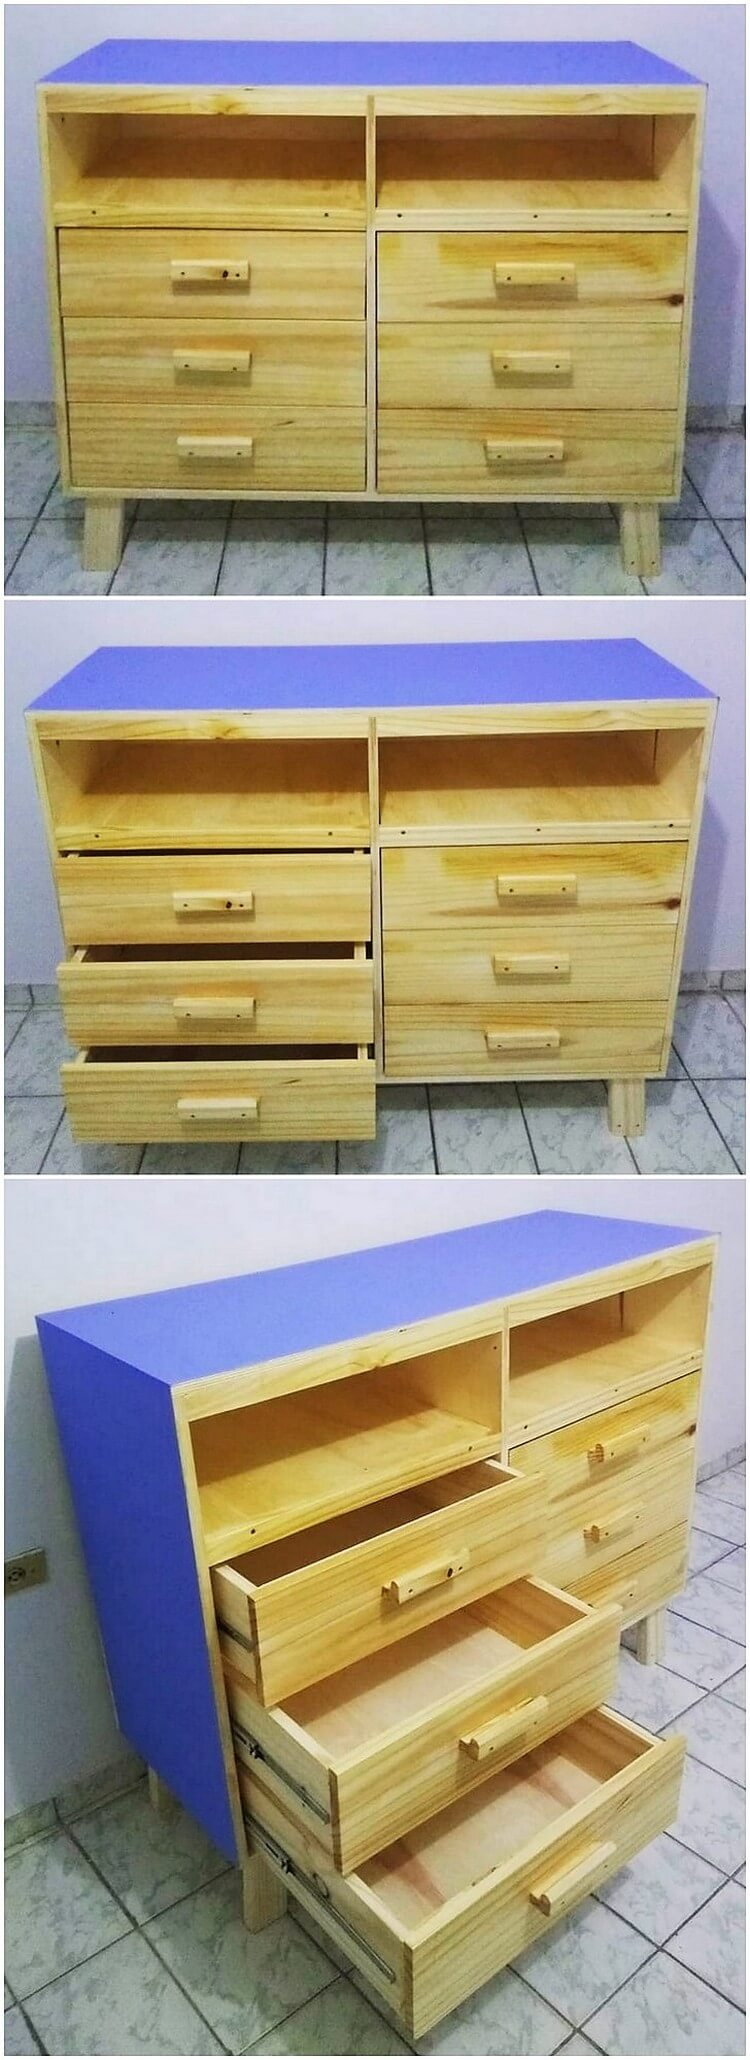 Wood Pallet Chest of Drawers